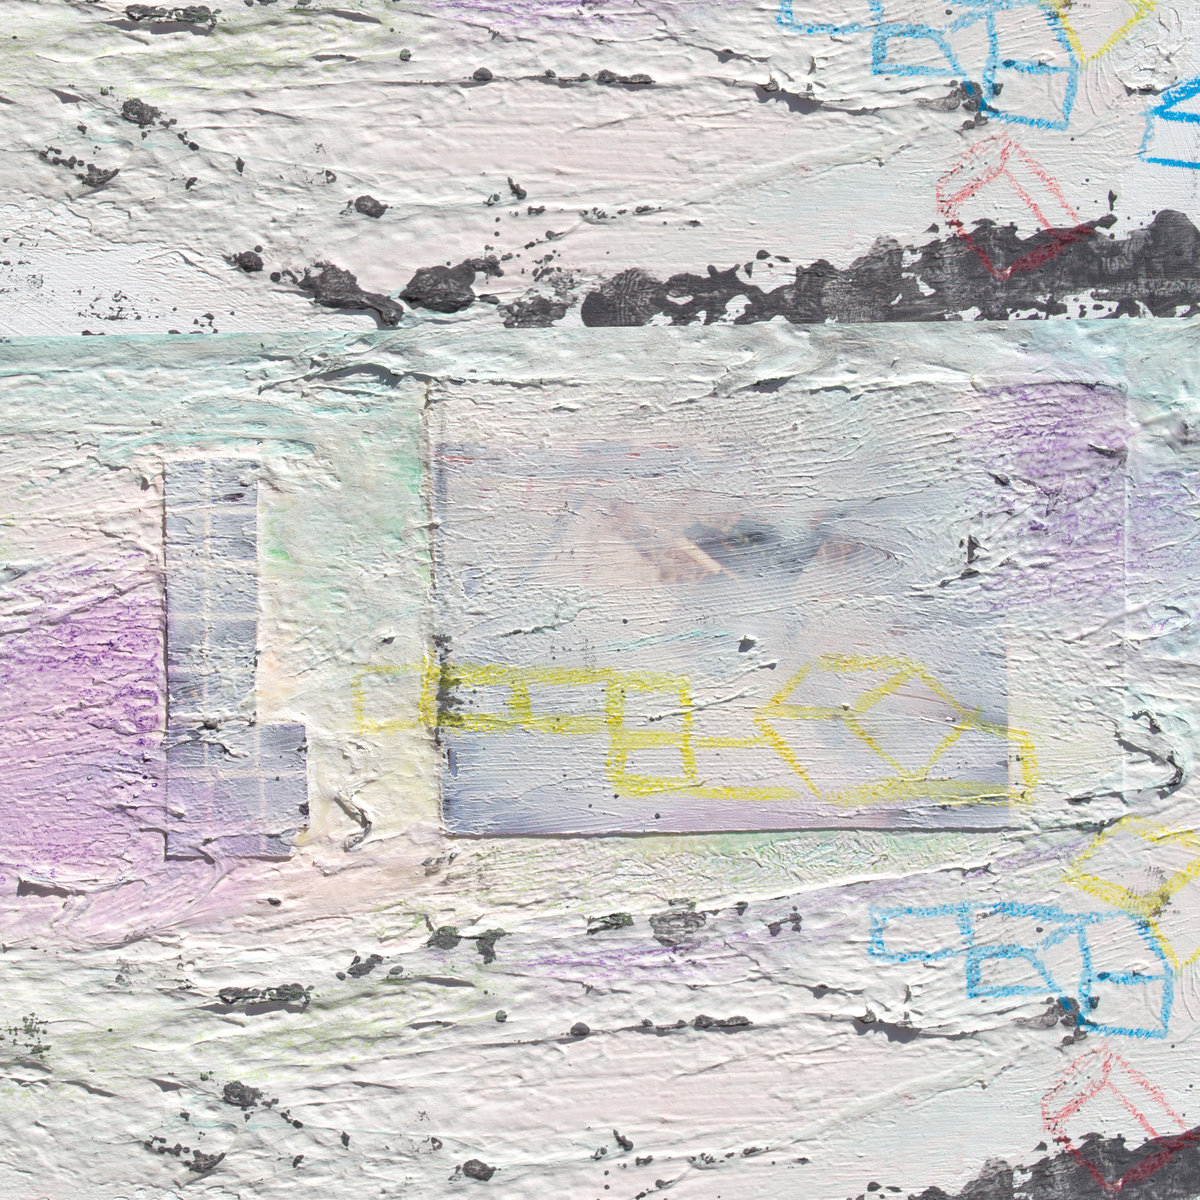 bss hug of thunder Broken Social Scene share first album in seven years, Hug of Thunder: Stream